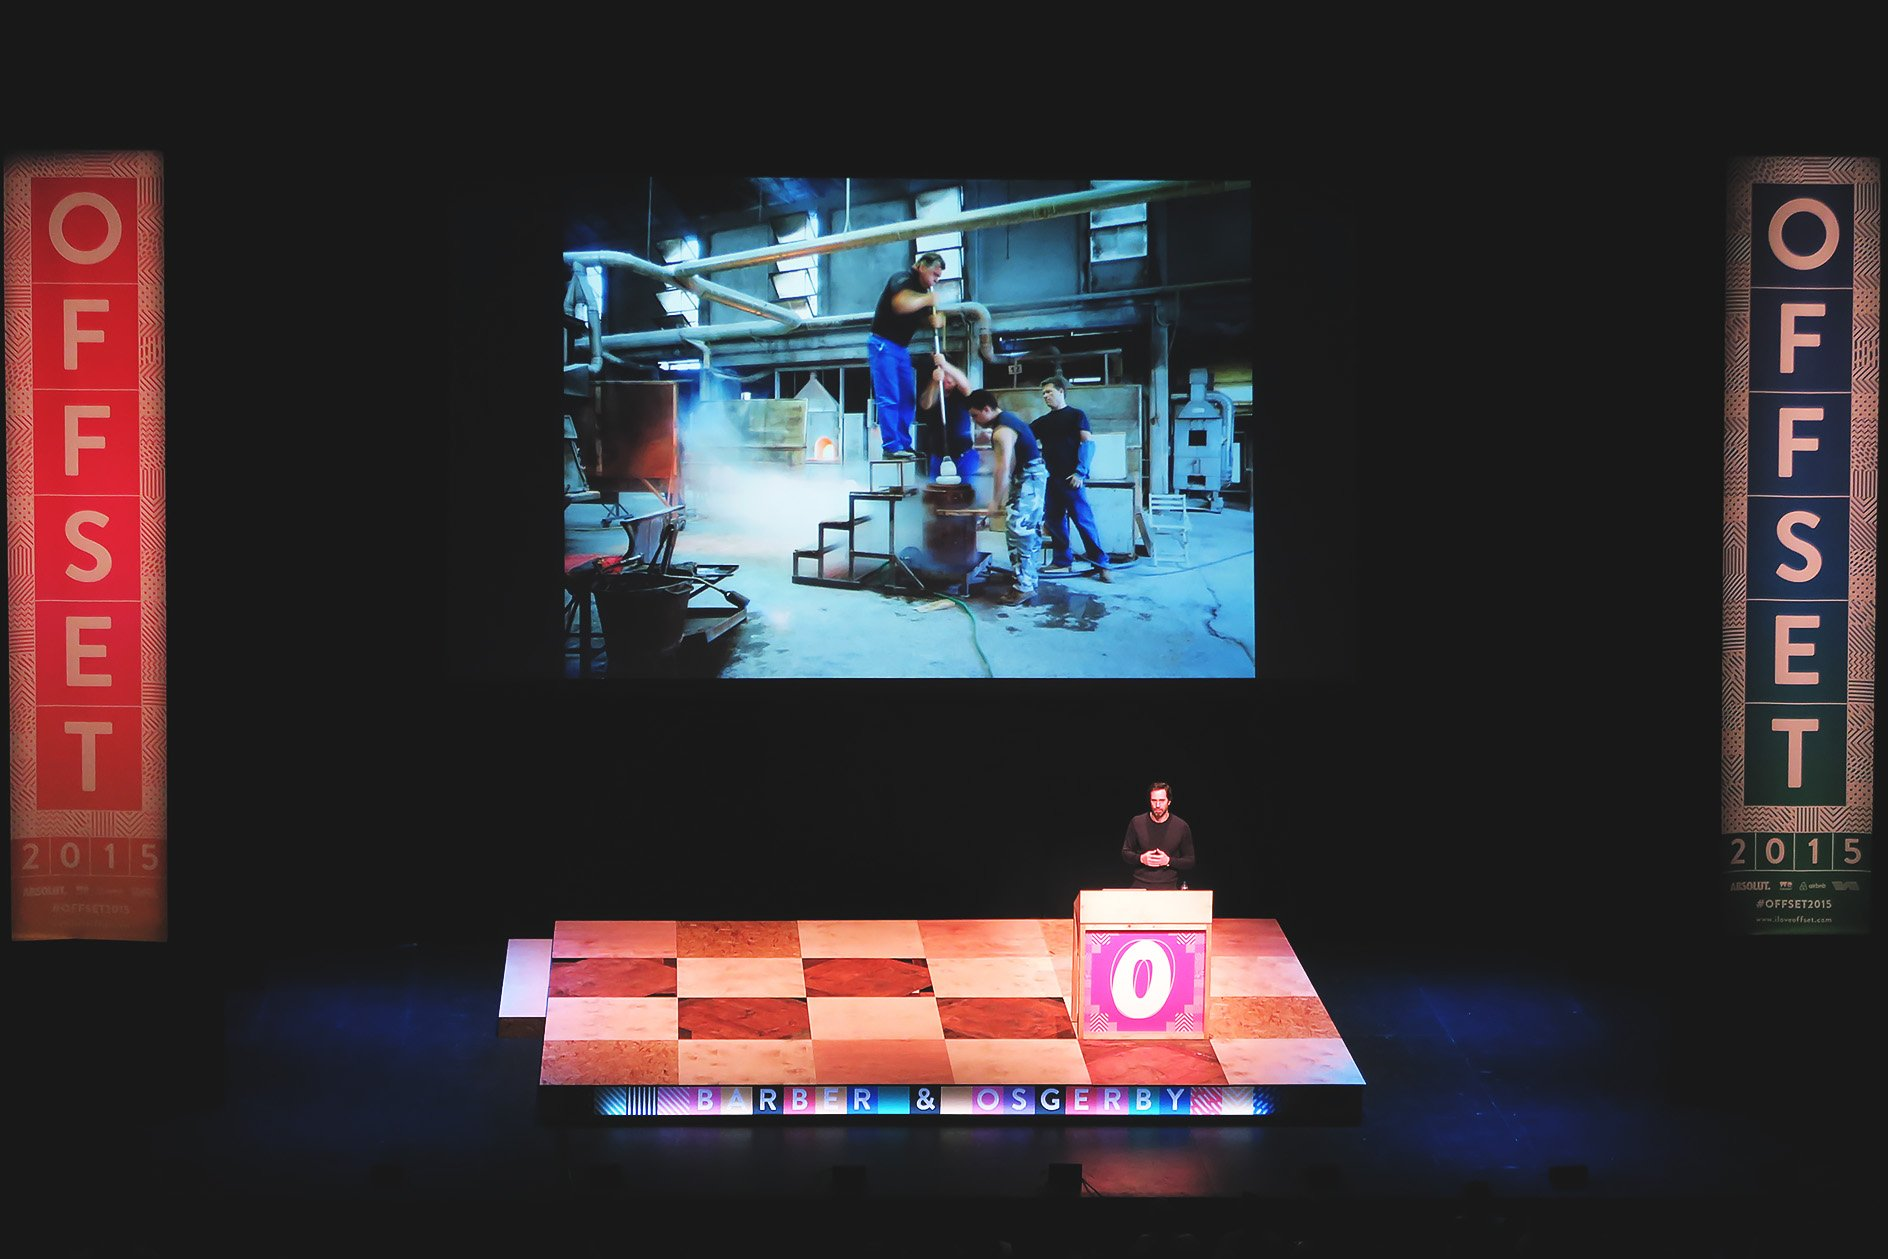 Barber & Osgerby at OFFSET 2015 – Glass blowing